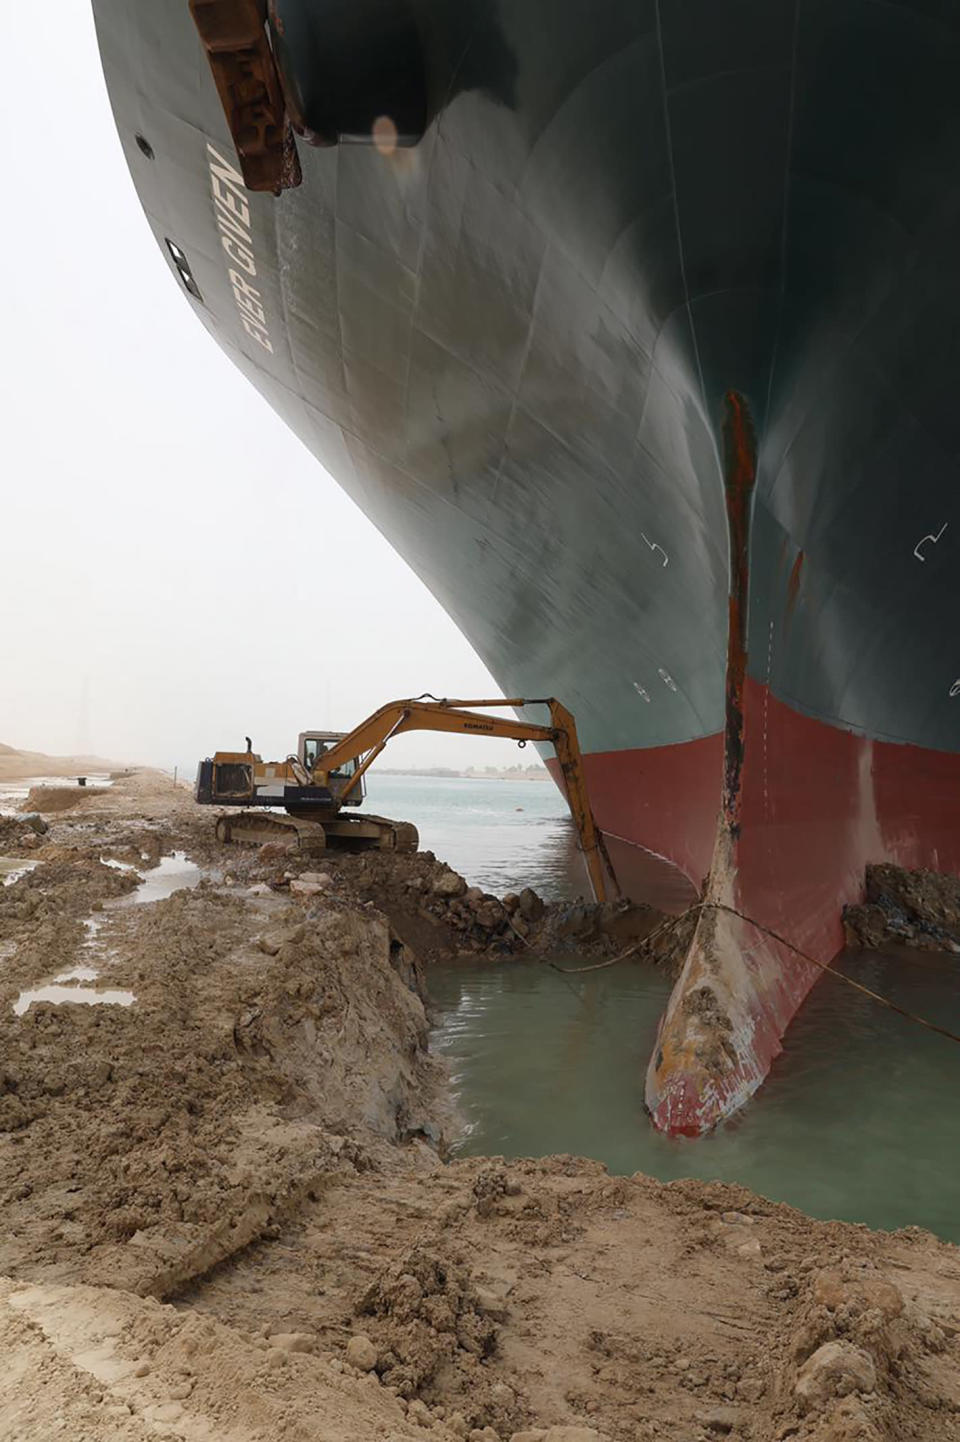 This photo released by the Suez Canal Authority on Thursday, March 25, 2021, shows a backhoe trying to dig out the keel of the Ever Given, a Panama-flagged cargo ship, that is wedged across the Suez Canal and blocking traffic in the vital waterway. An operation is underway to try to work free the ship, which further imperiled global shipping Thursday as at least 150 other vessels needing to pass through the crucial waterway idled waiting for the obstruction to clear. (Suez Canal Authority via AP)